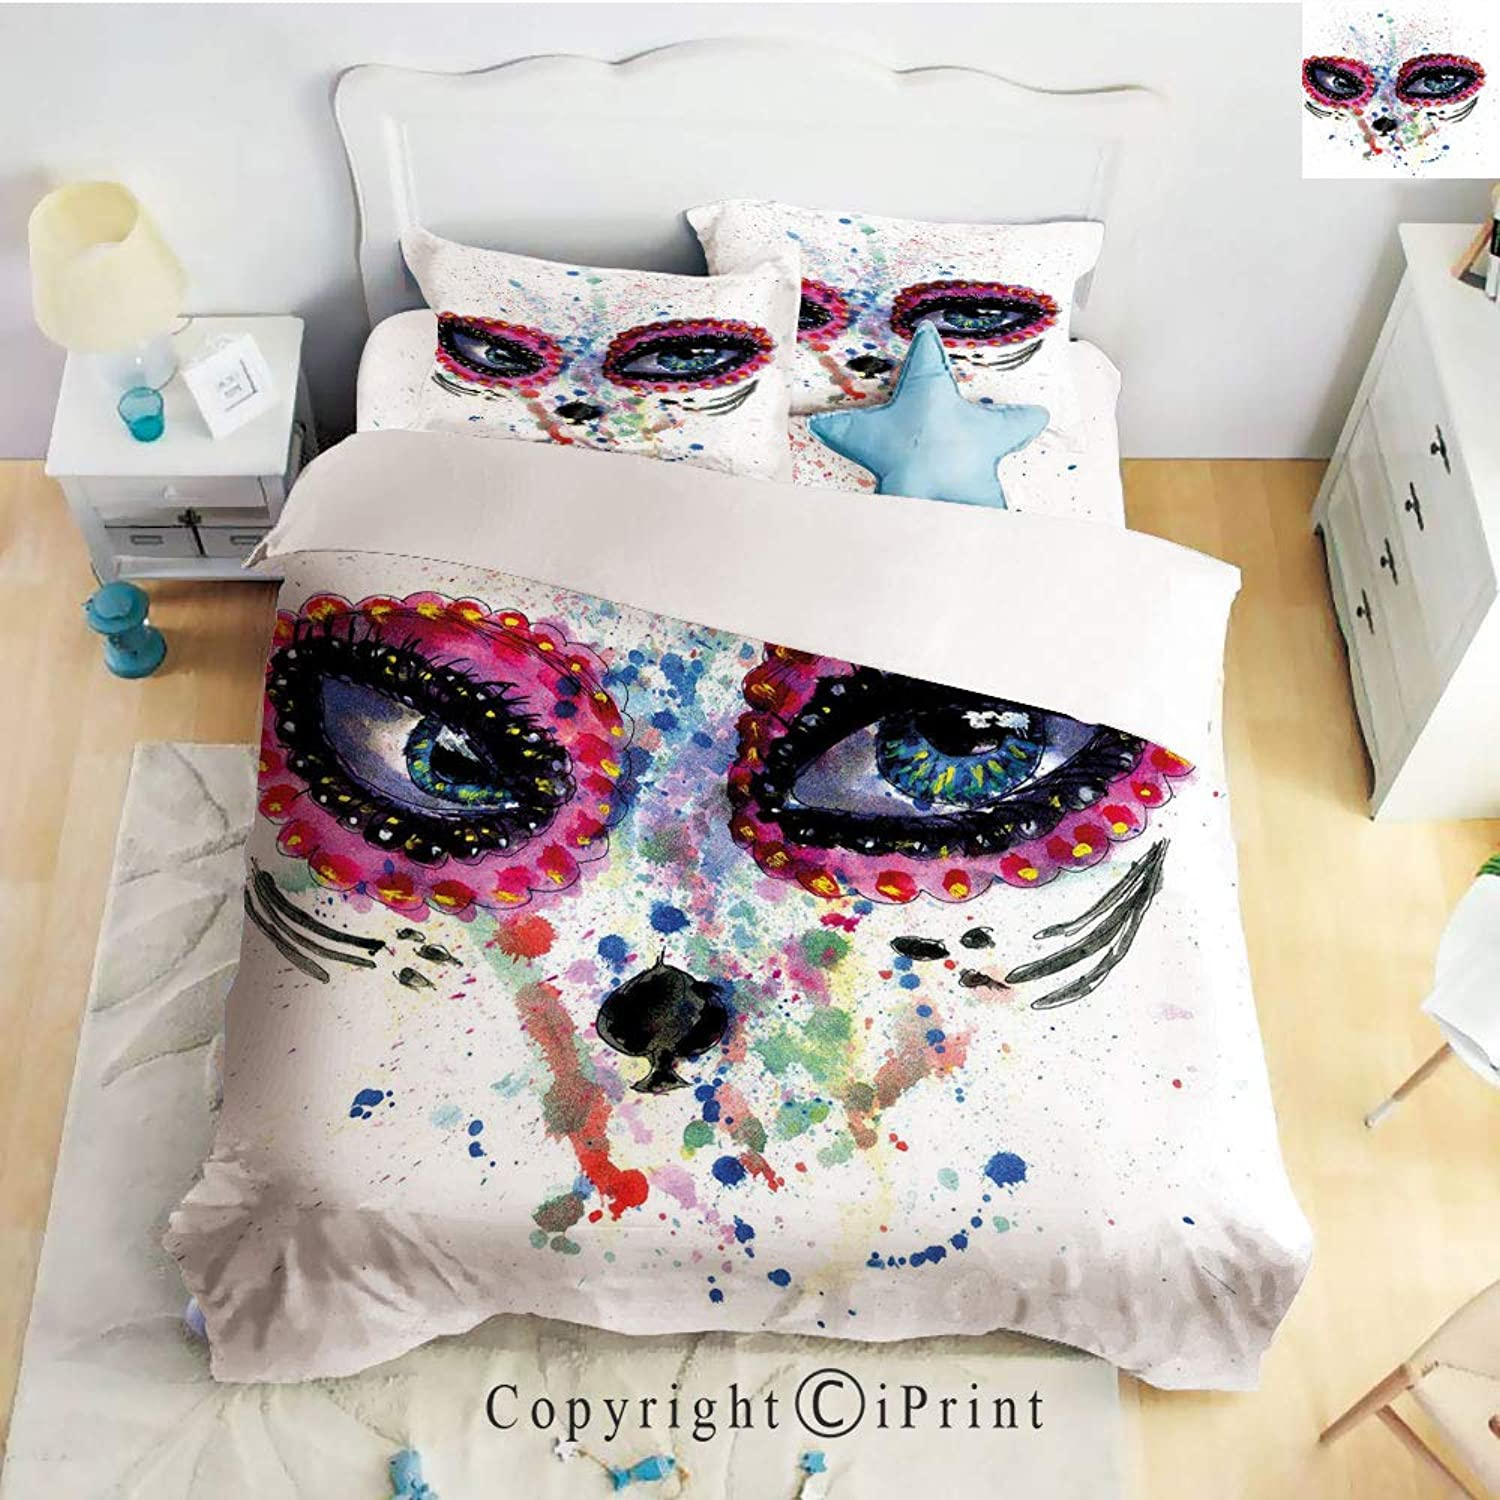 Homenon Classic Sheets 4 Piece Bed Sheet Set,Spooky Big Eyes Cat Face Girl Portrait Artistic Ceremonial Celebration,Multicolor,Twin Size,Softest Bed Sheets and Pillow Cases